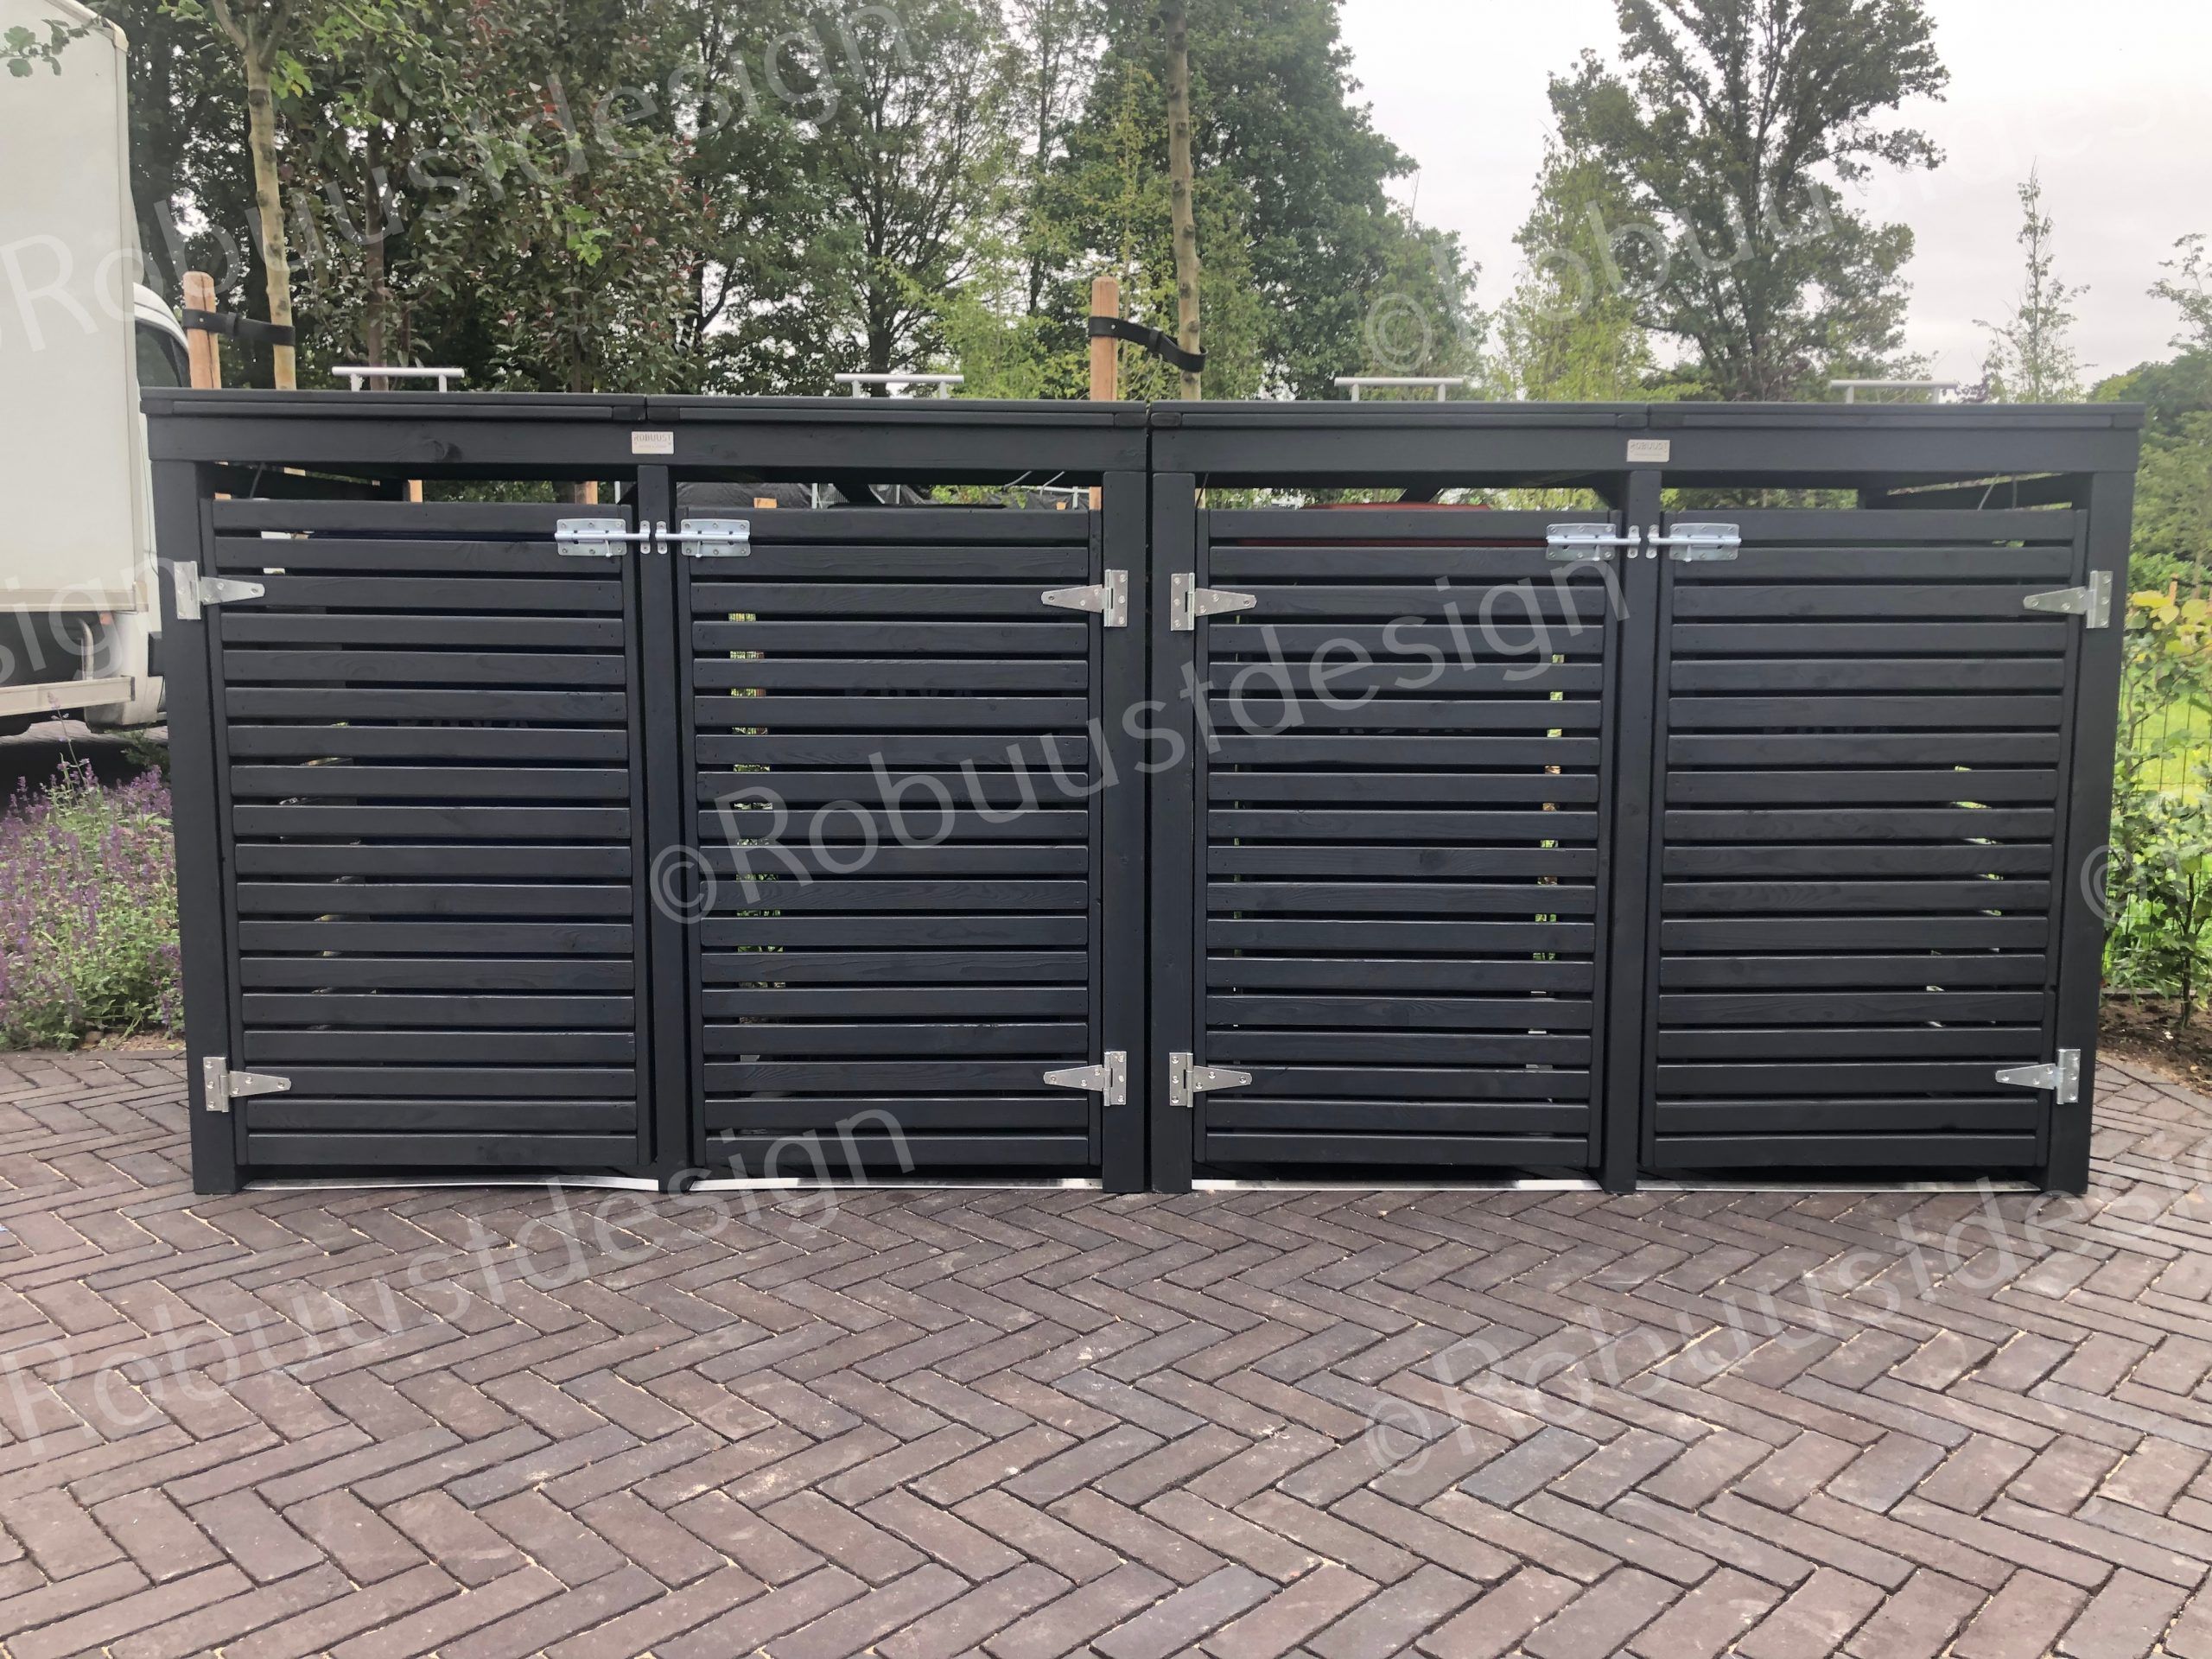 afvalcontainers-opbergen-in-tuin